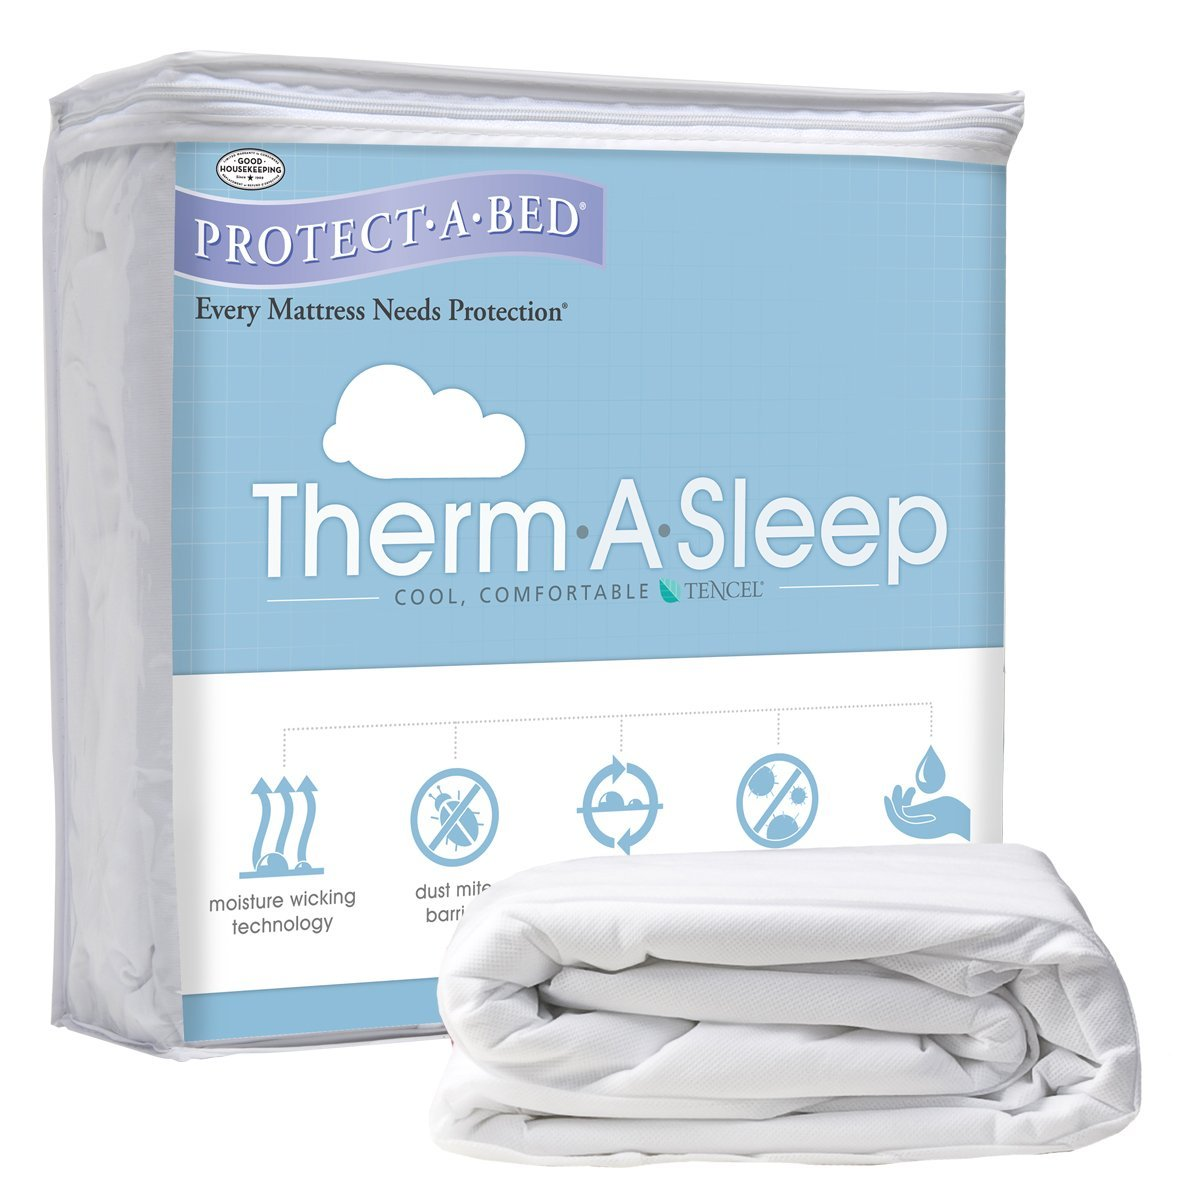 Therm-A-Sleep Mattress Protector FULL